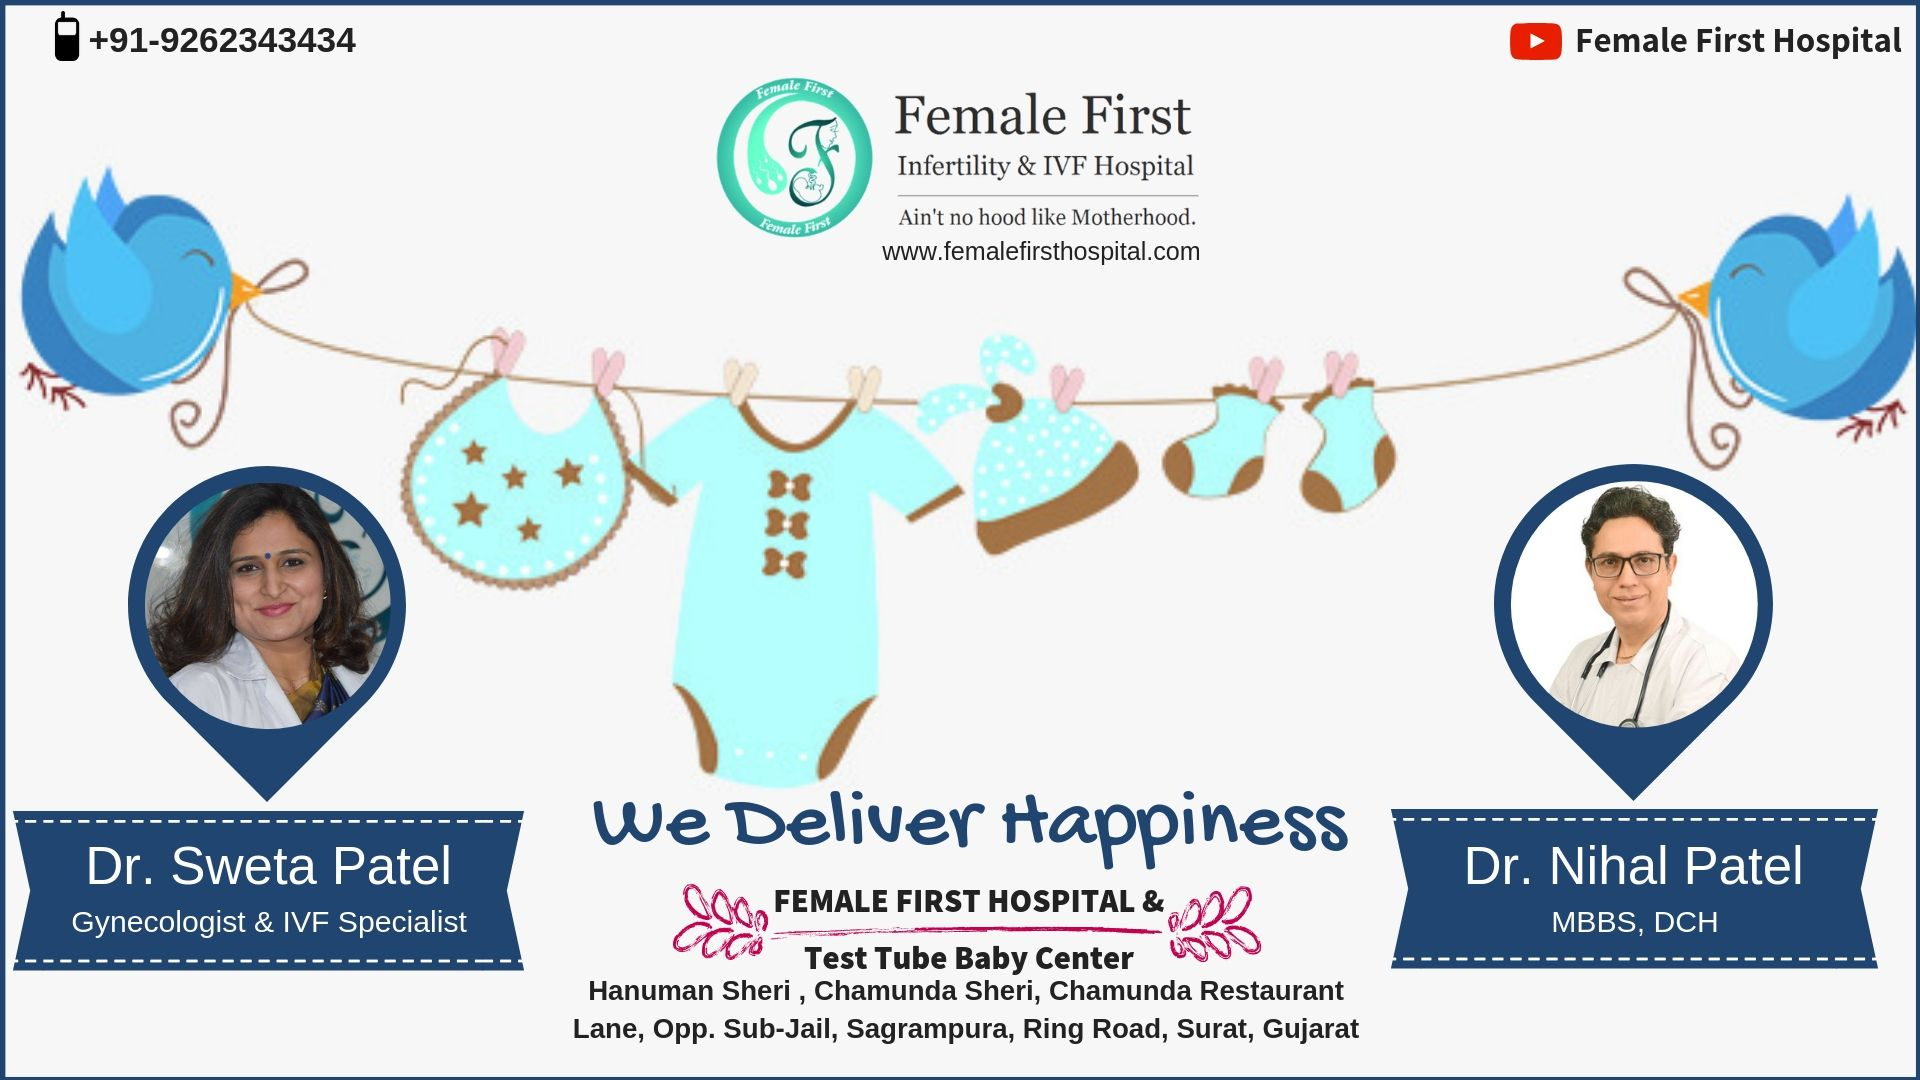 Affordable IVF treatment at Female First Hospital in Surat